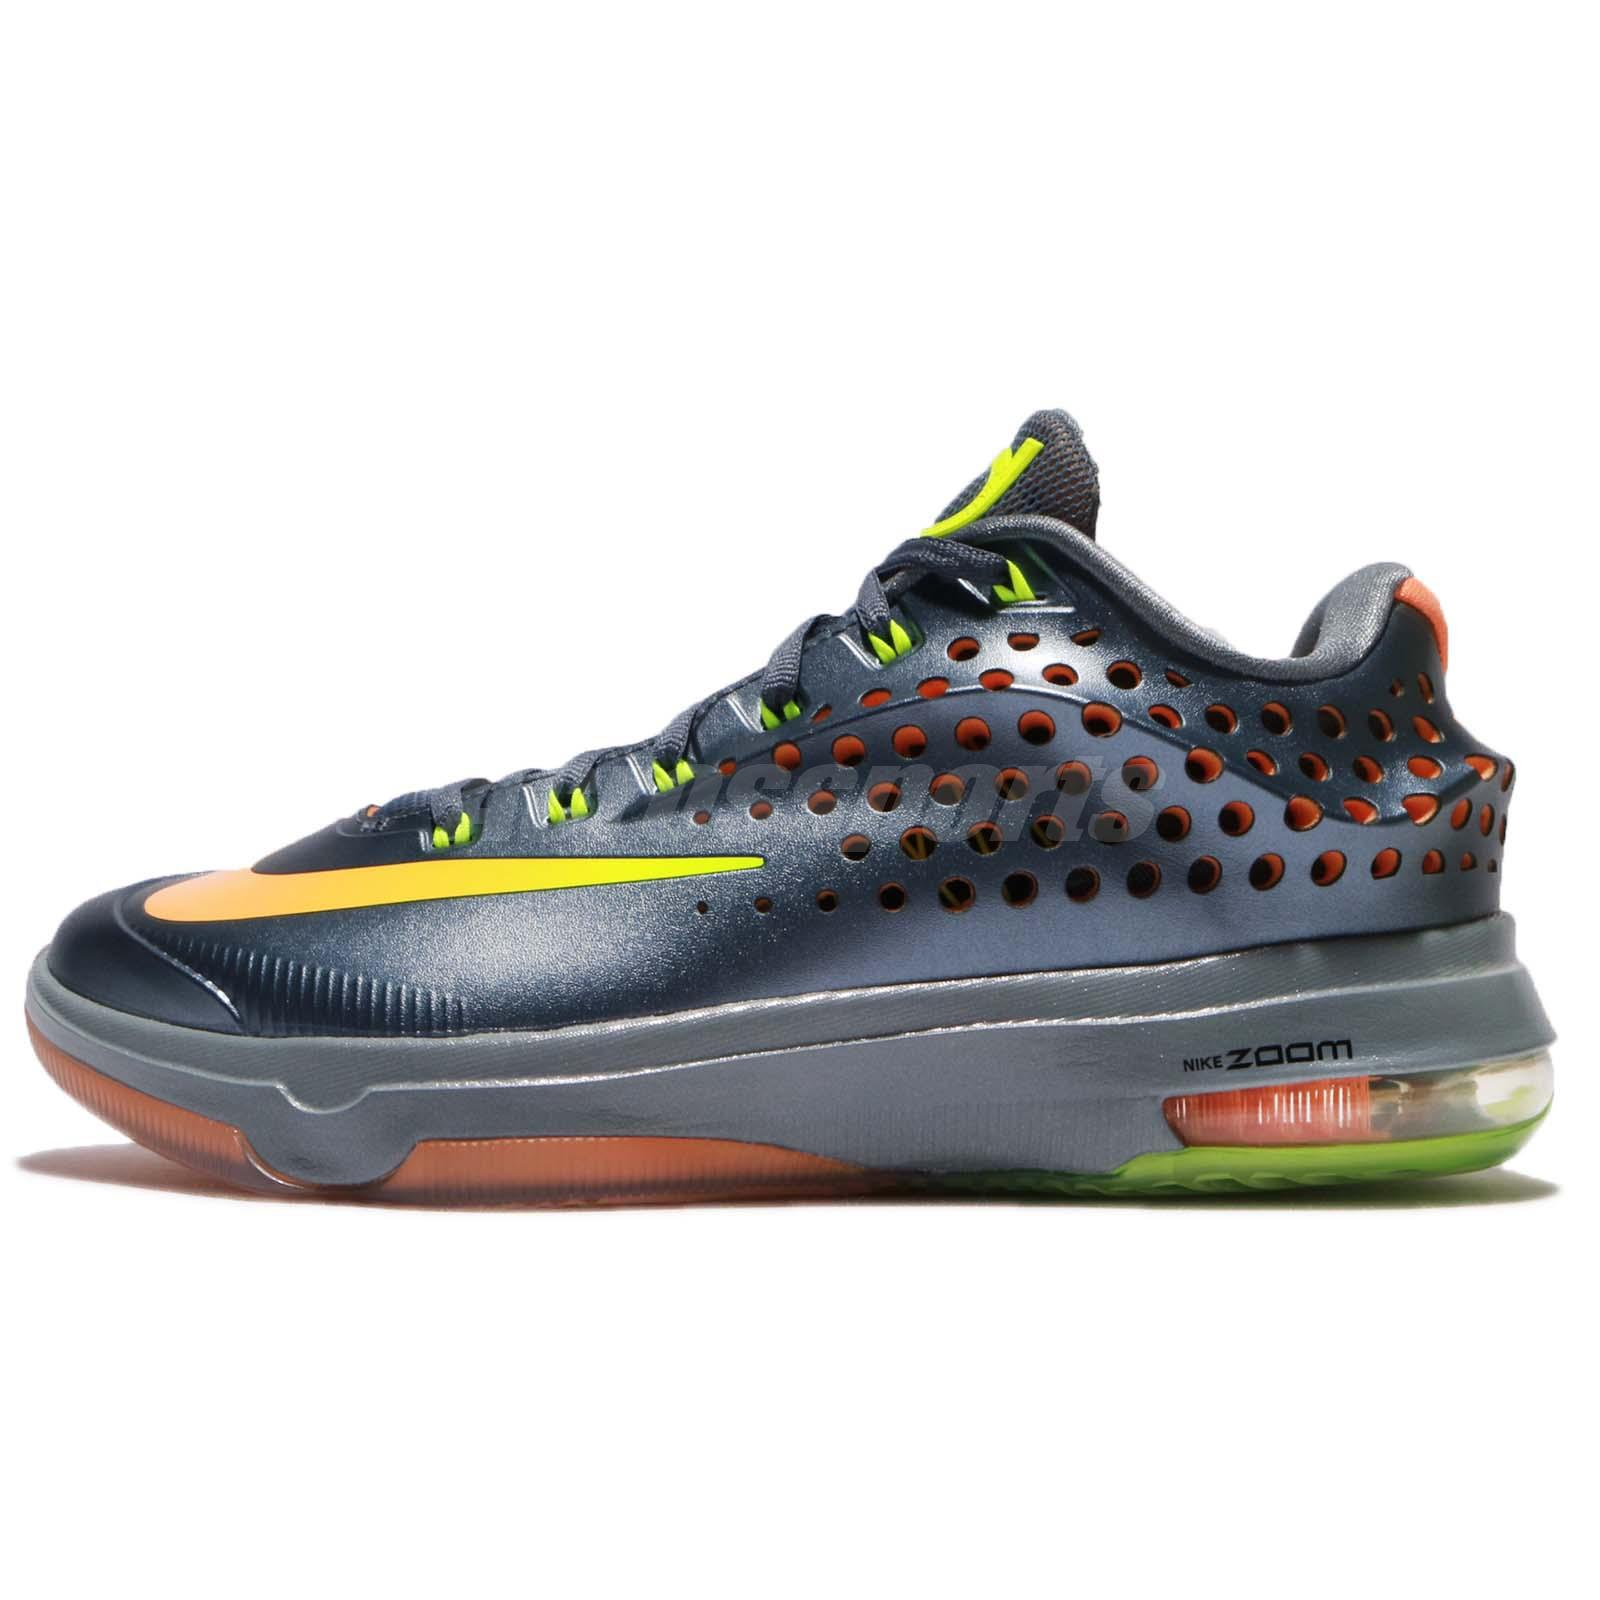 nike kd vii elite 7 team collection kevin durant air max